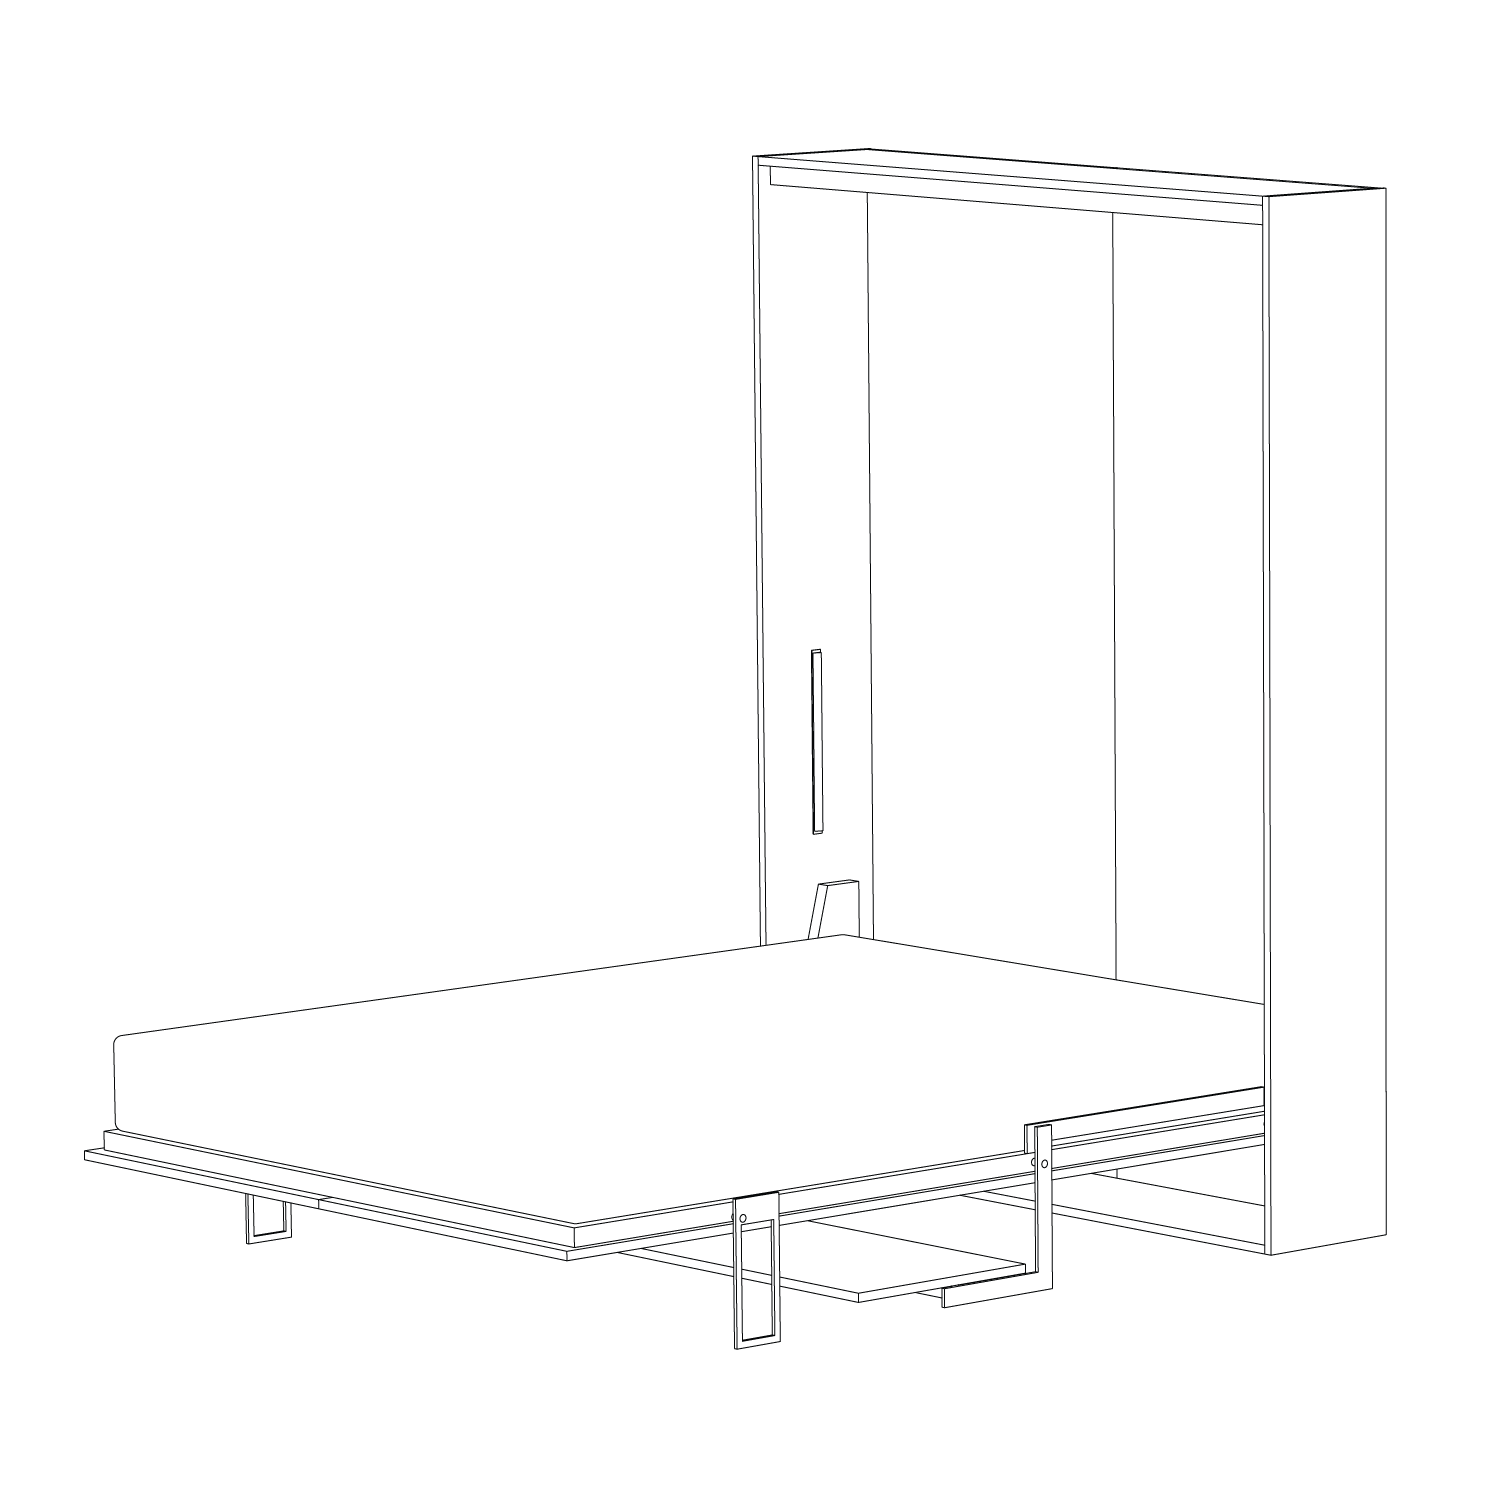 EDDY DESK (OPENED).png